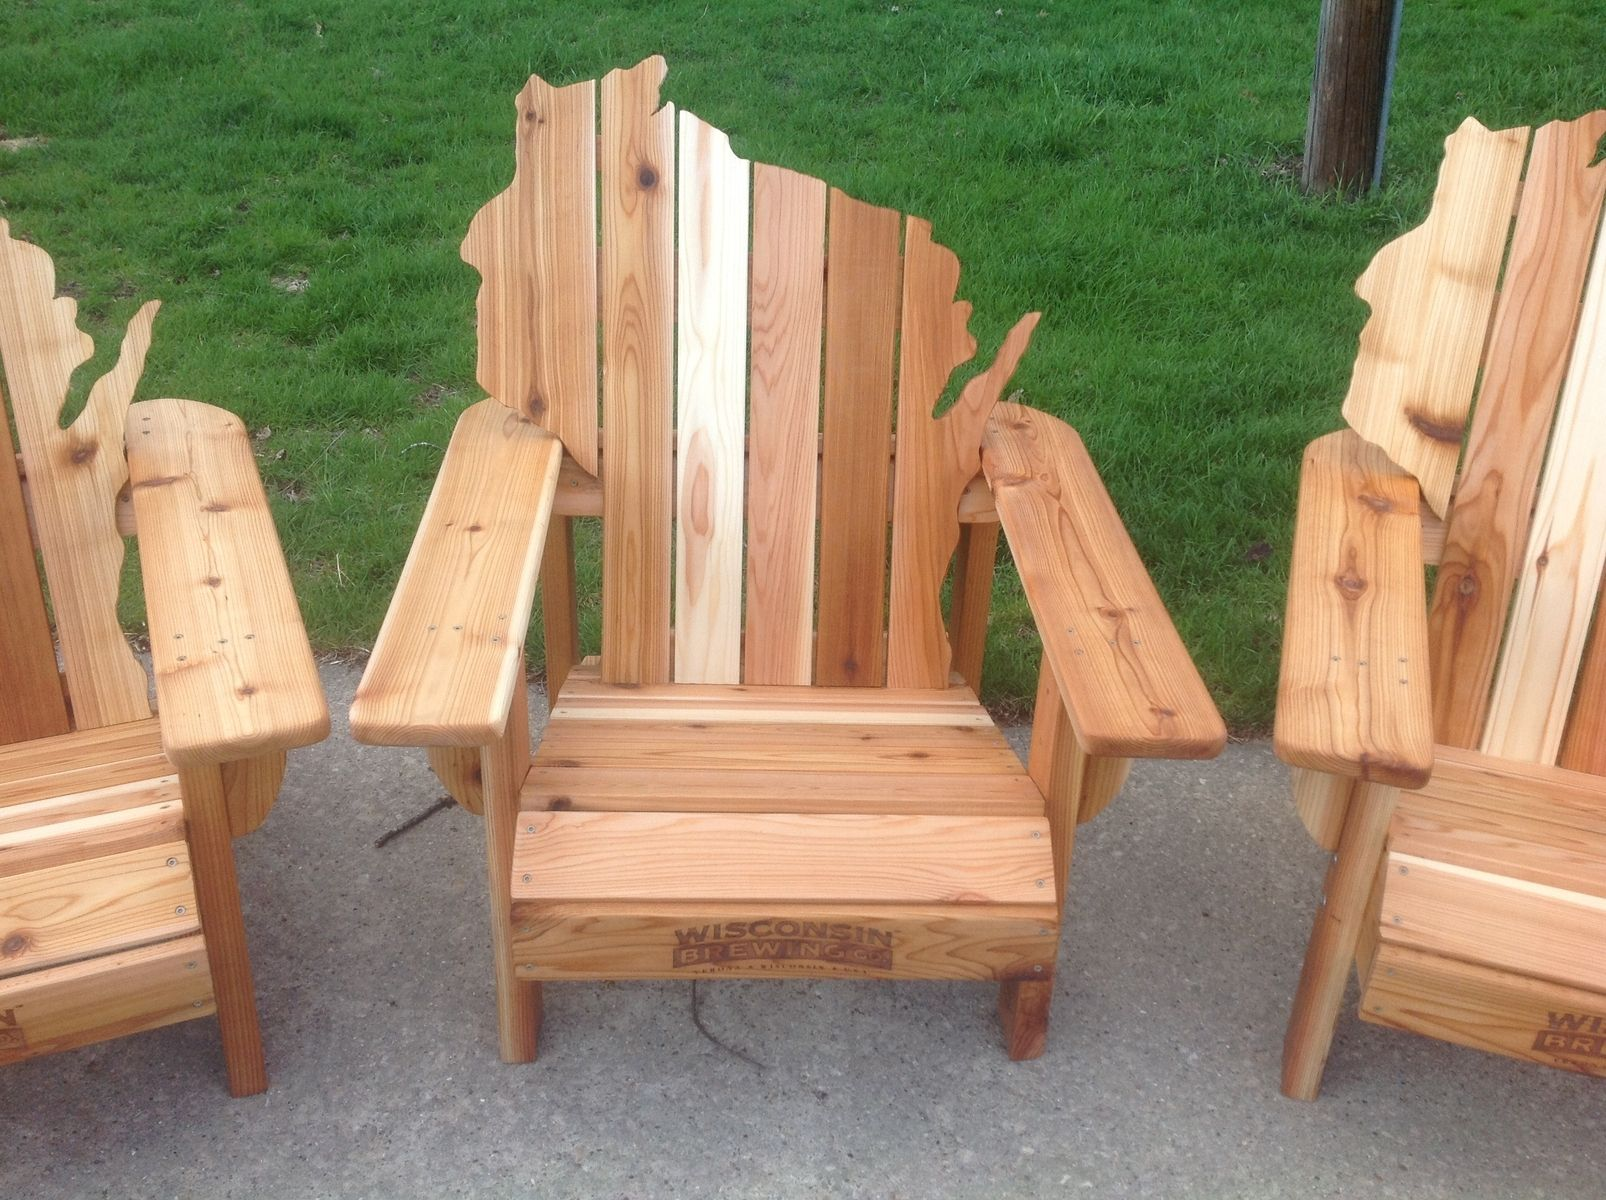 Unique outdoor wooden chair adirondack wisconsin chairs with personalized laser engraving outdoor wooden chair for designs